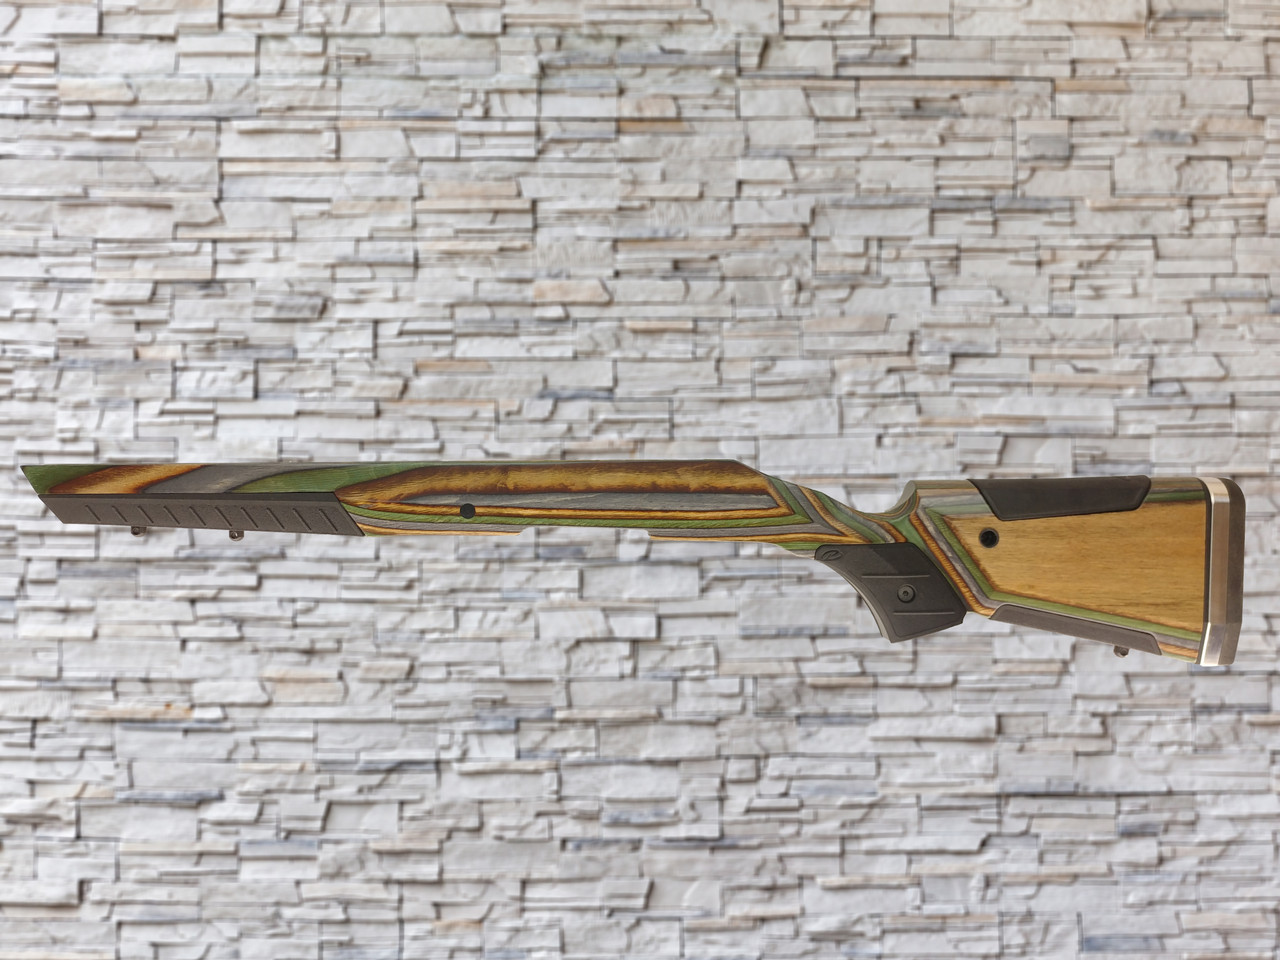 Boyds At-one Adjustable Wood Stock Forest Camo for Ruger American SA Rifle